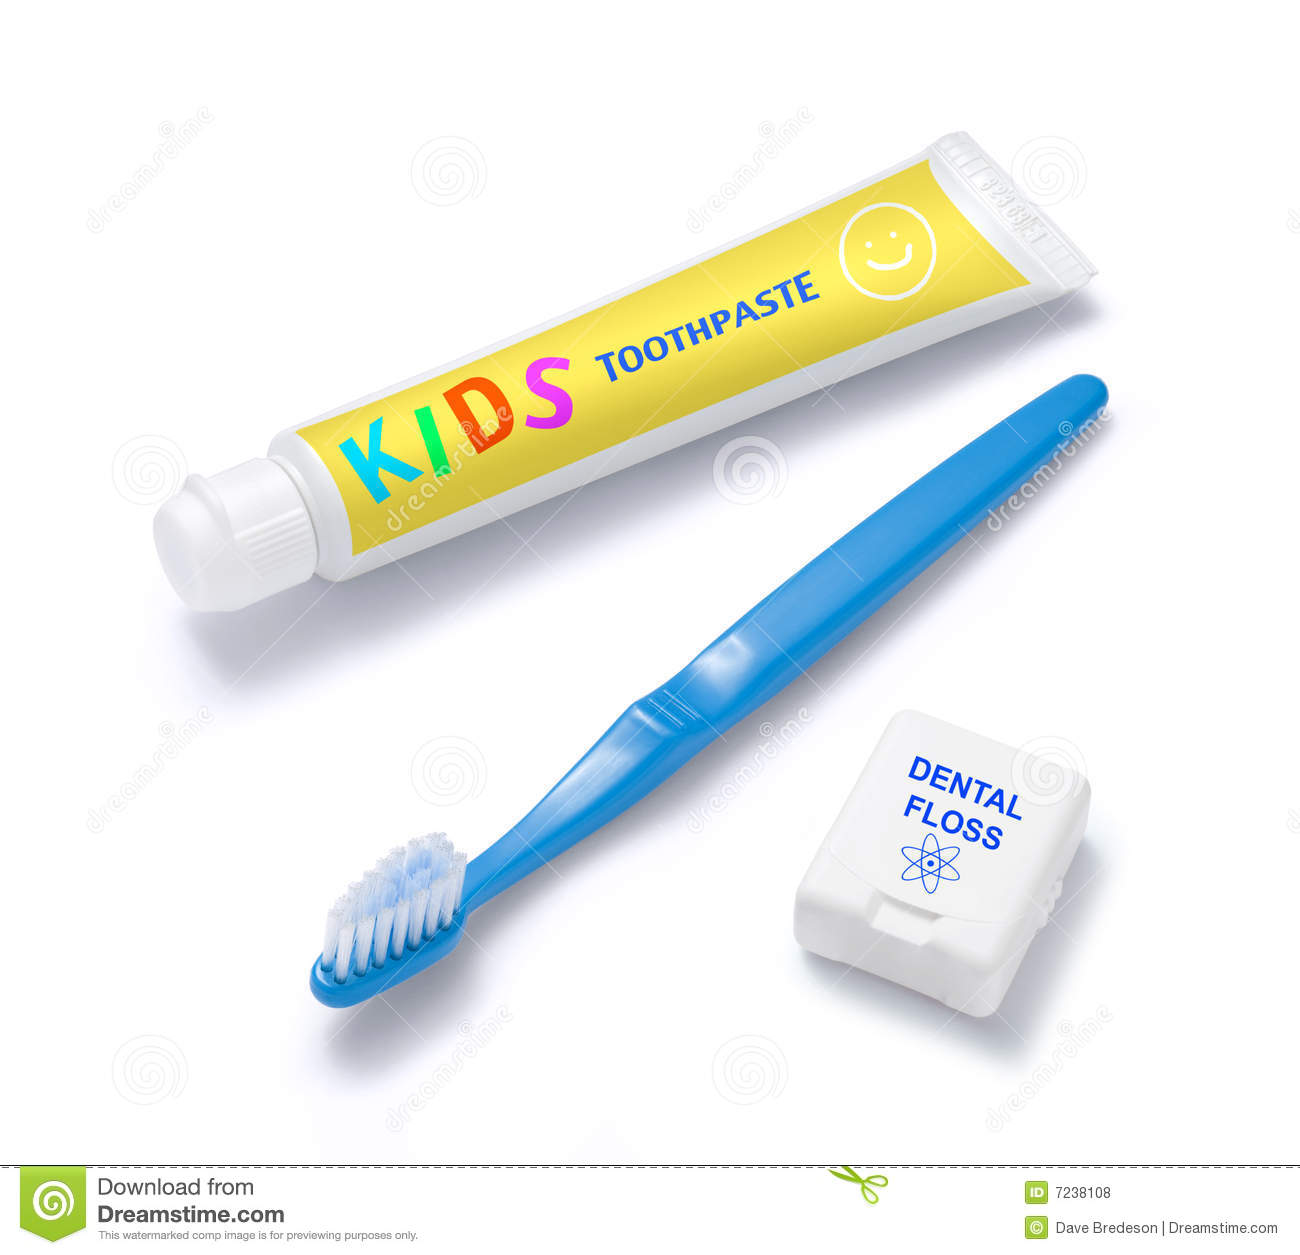 How to brush a childs teeth